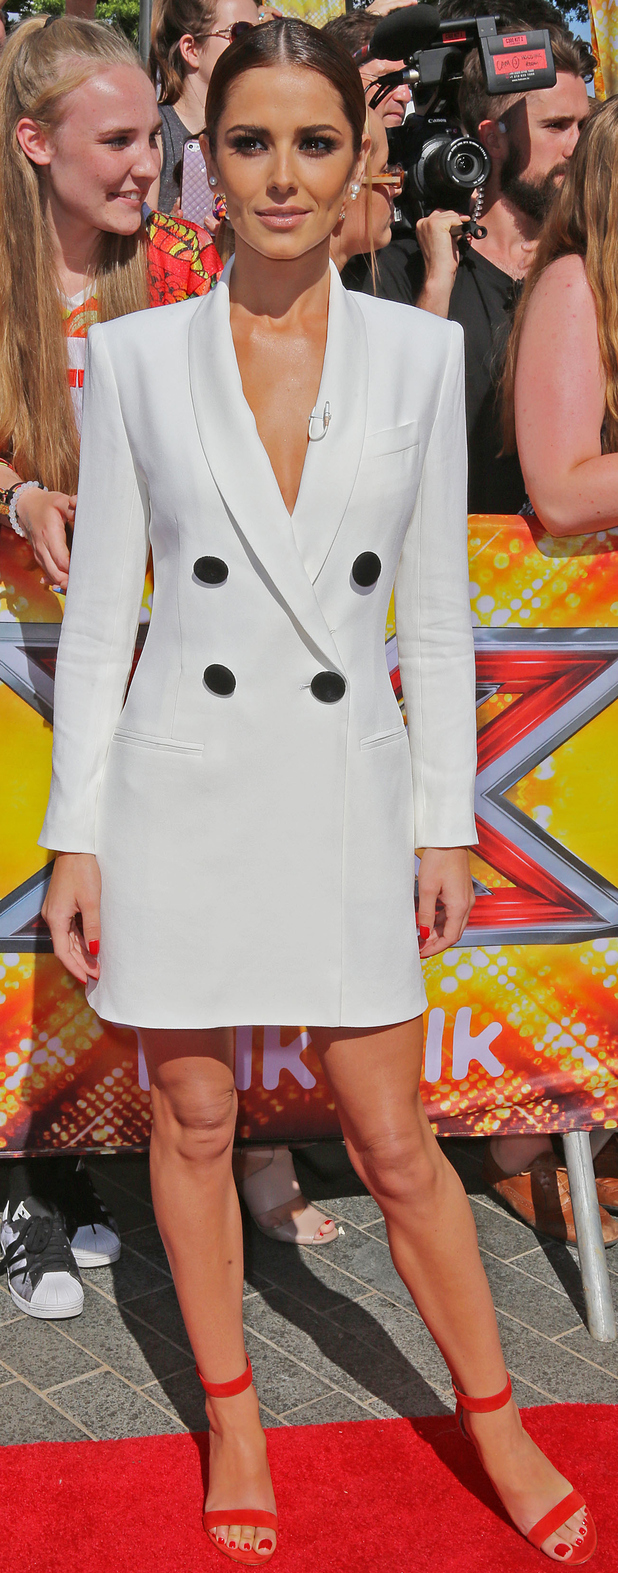 Cheryl Fernandez-Versini at the X Factor Auditions in London, 19th July 2015